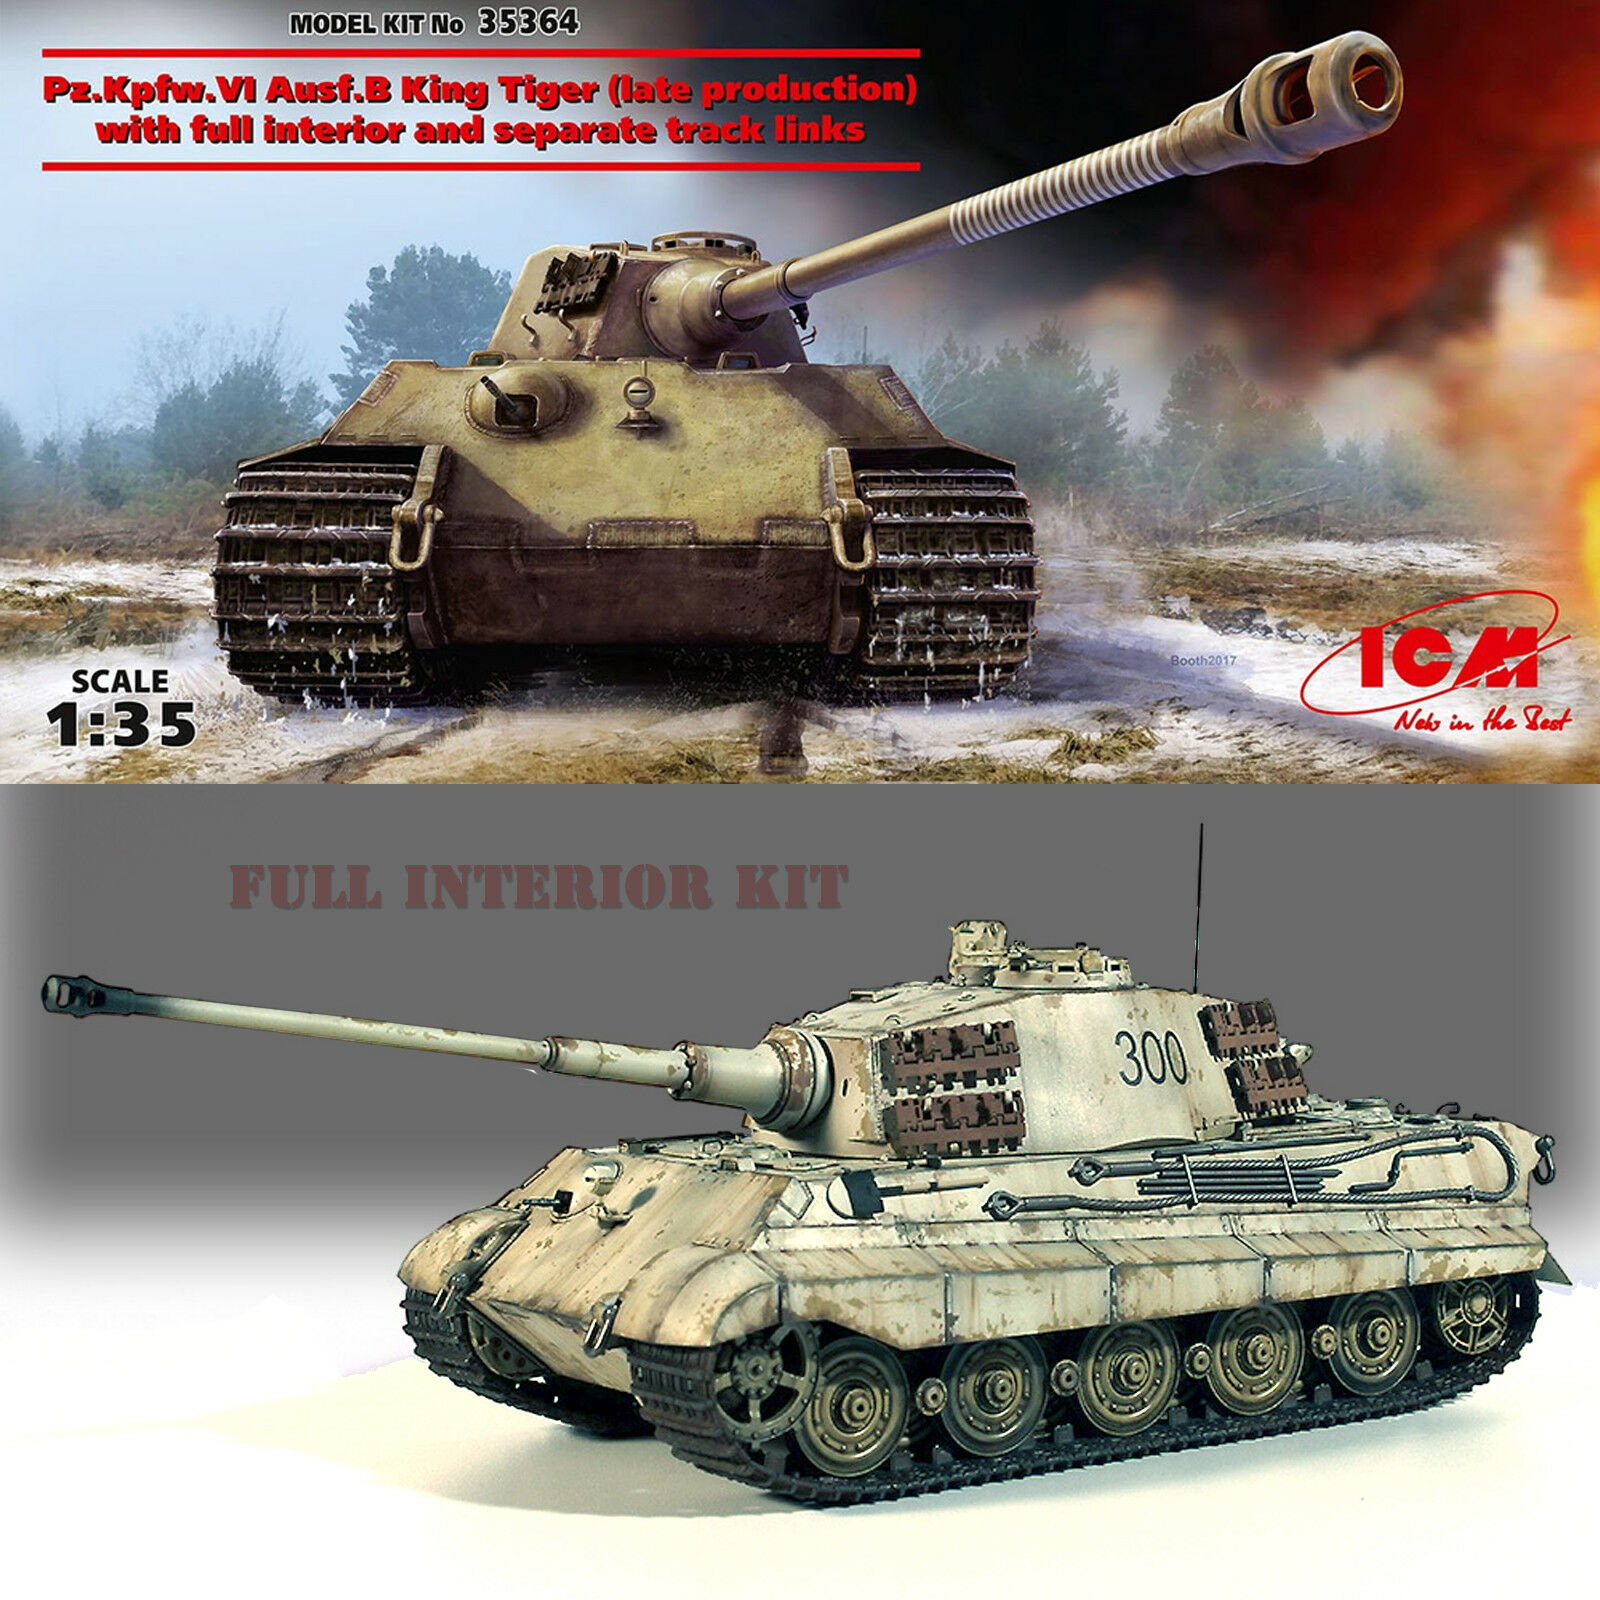 ICM 1 35 KING (ROYAL) TIGER II TANK PZ.KPFW. VI AUSF.B (LATE VERSION) KIT 35364